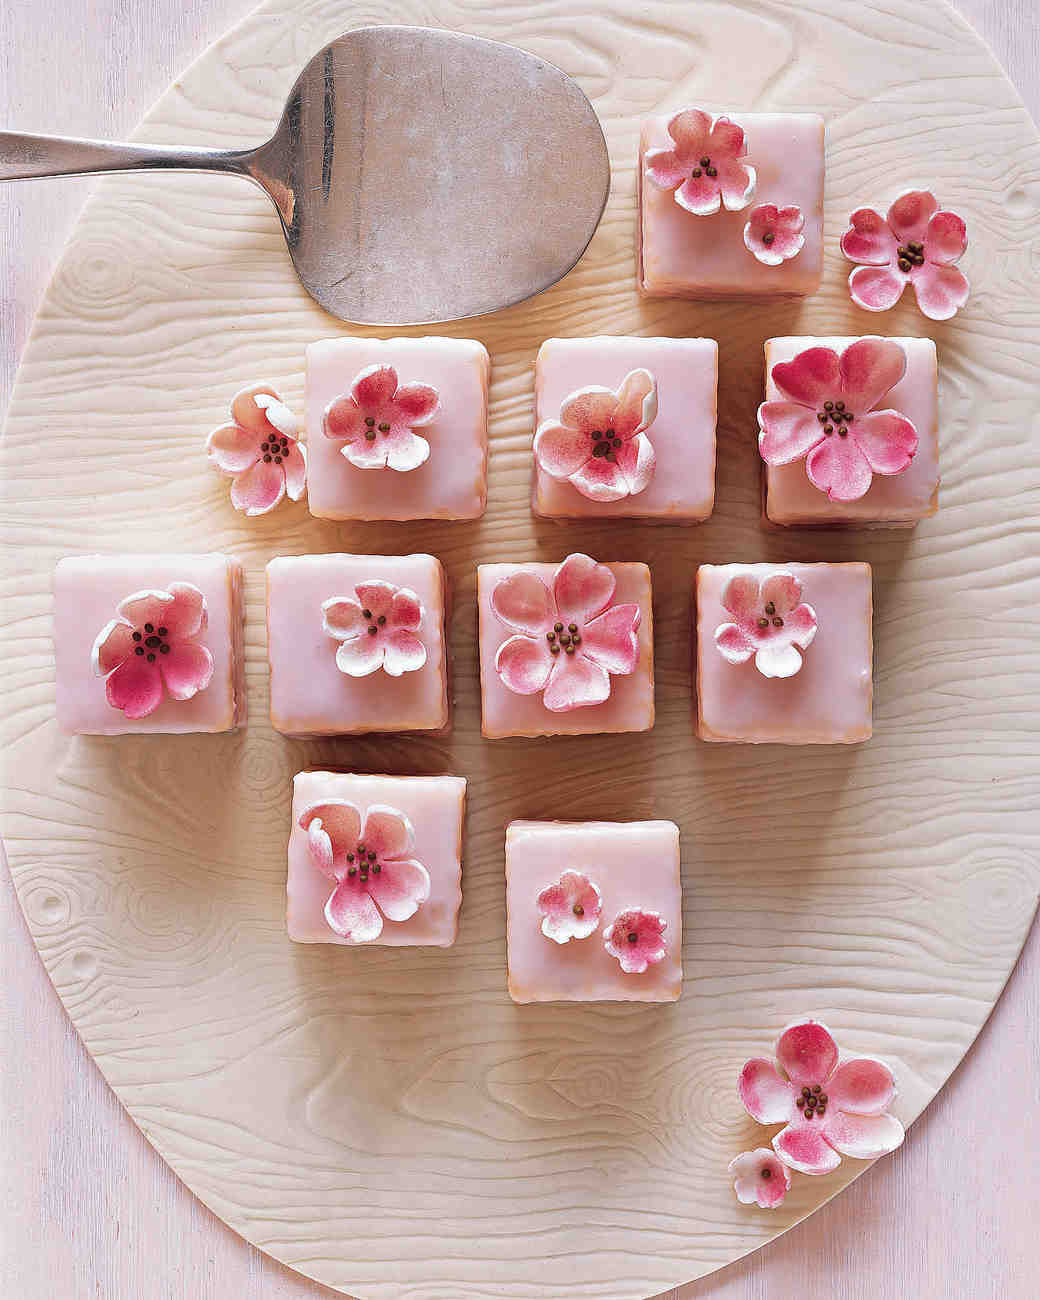 Pink Bridal Shower Ideas and Decorations We Love | Martha Stewart ...